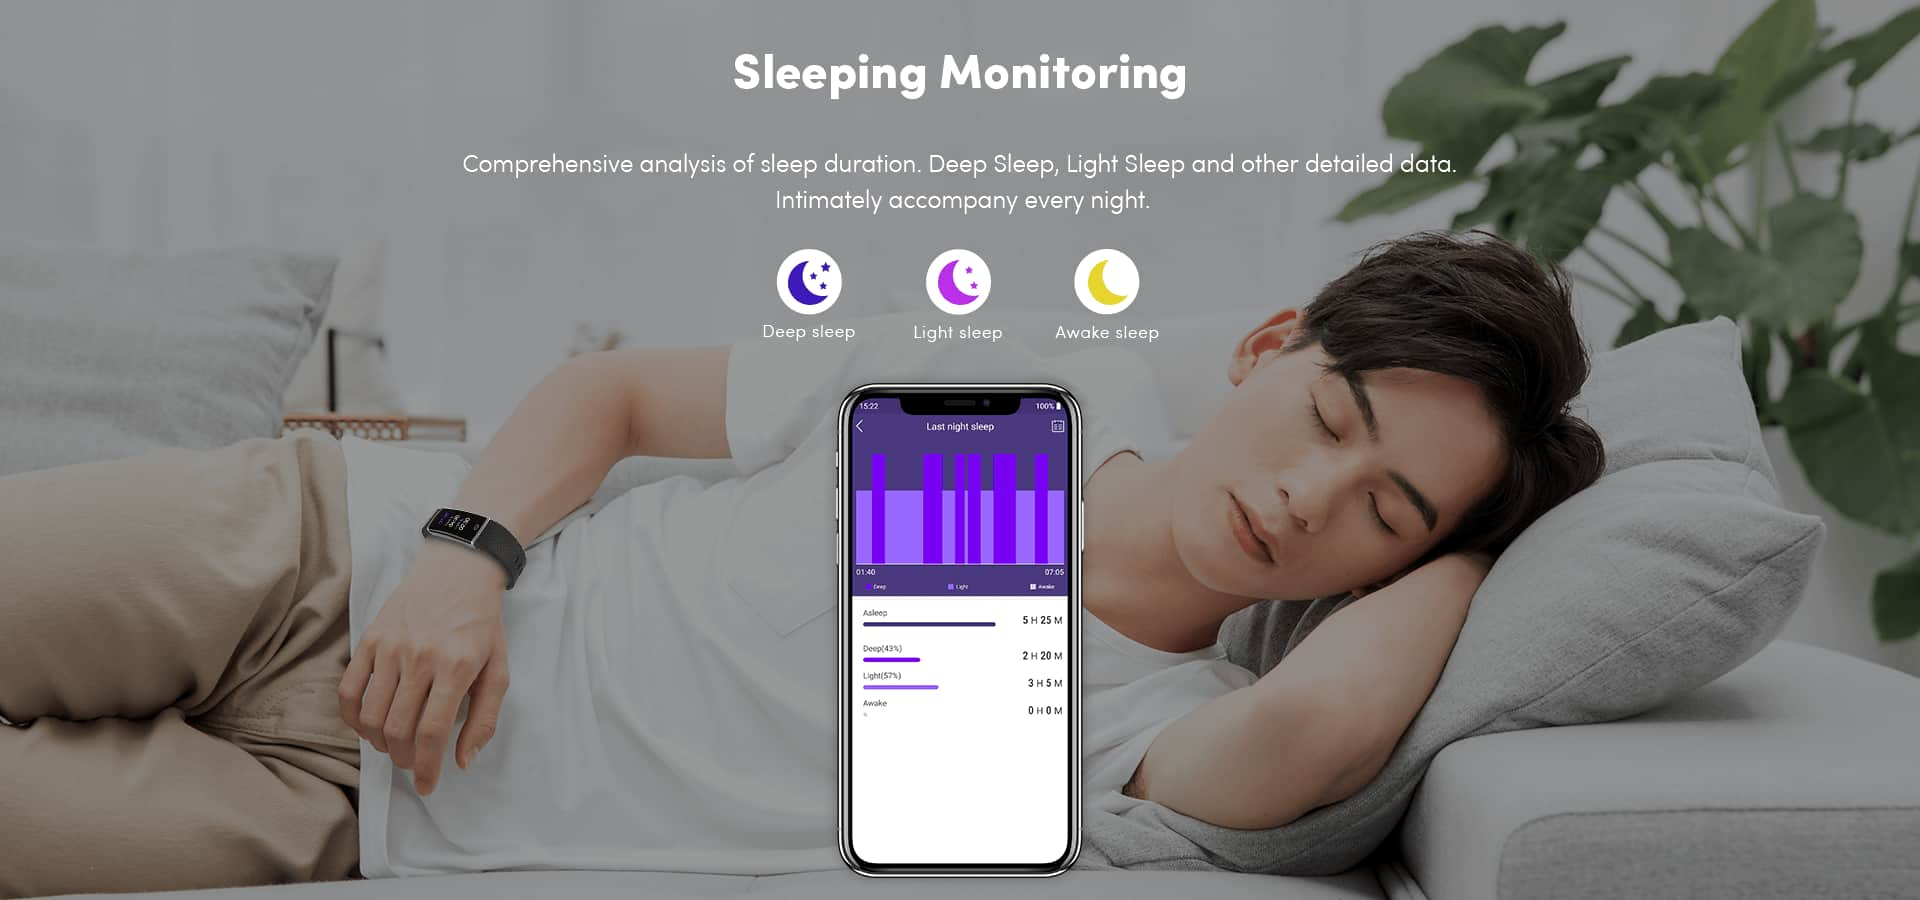 Sleeping Monitoring